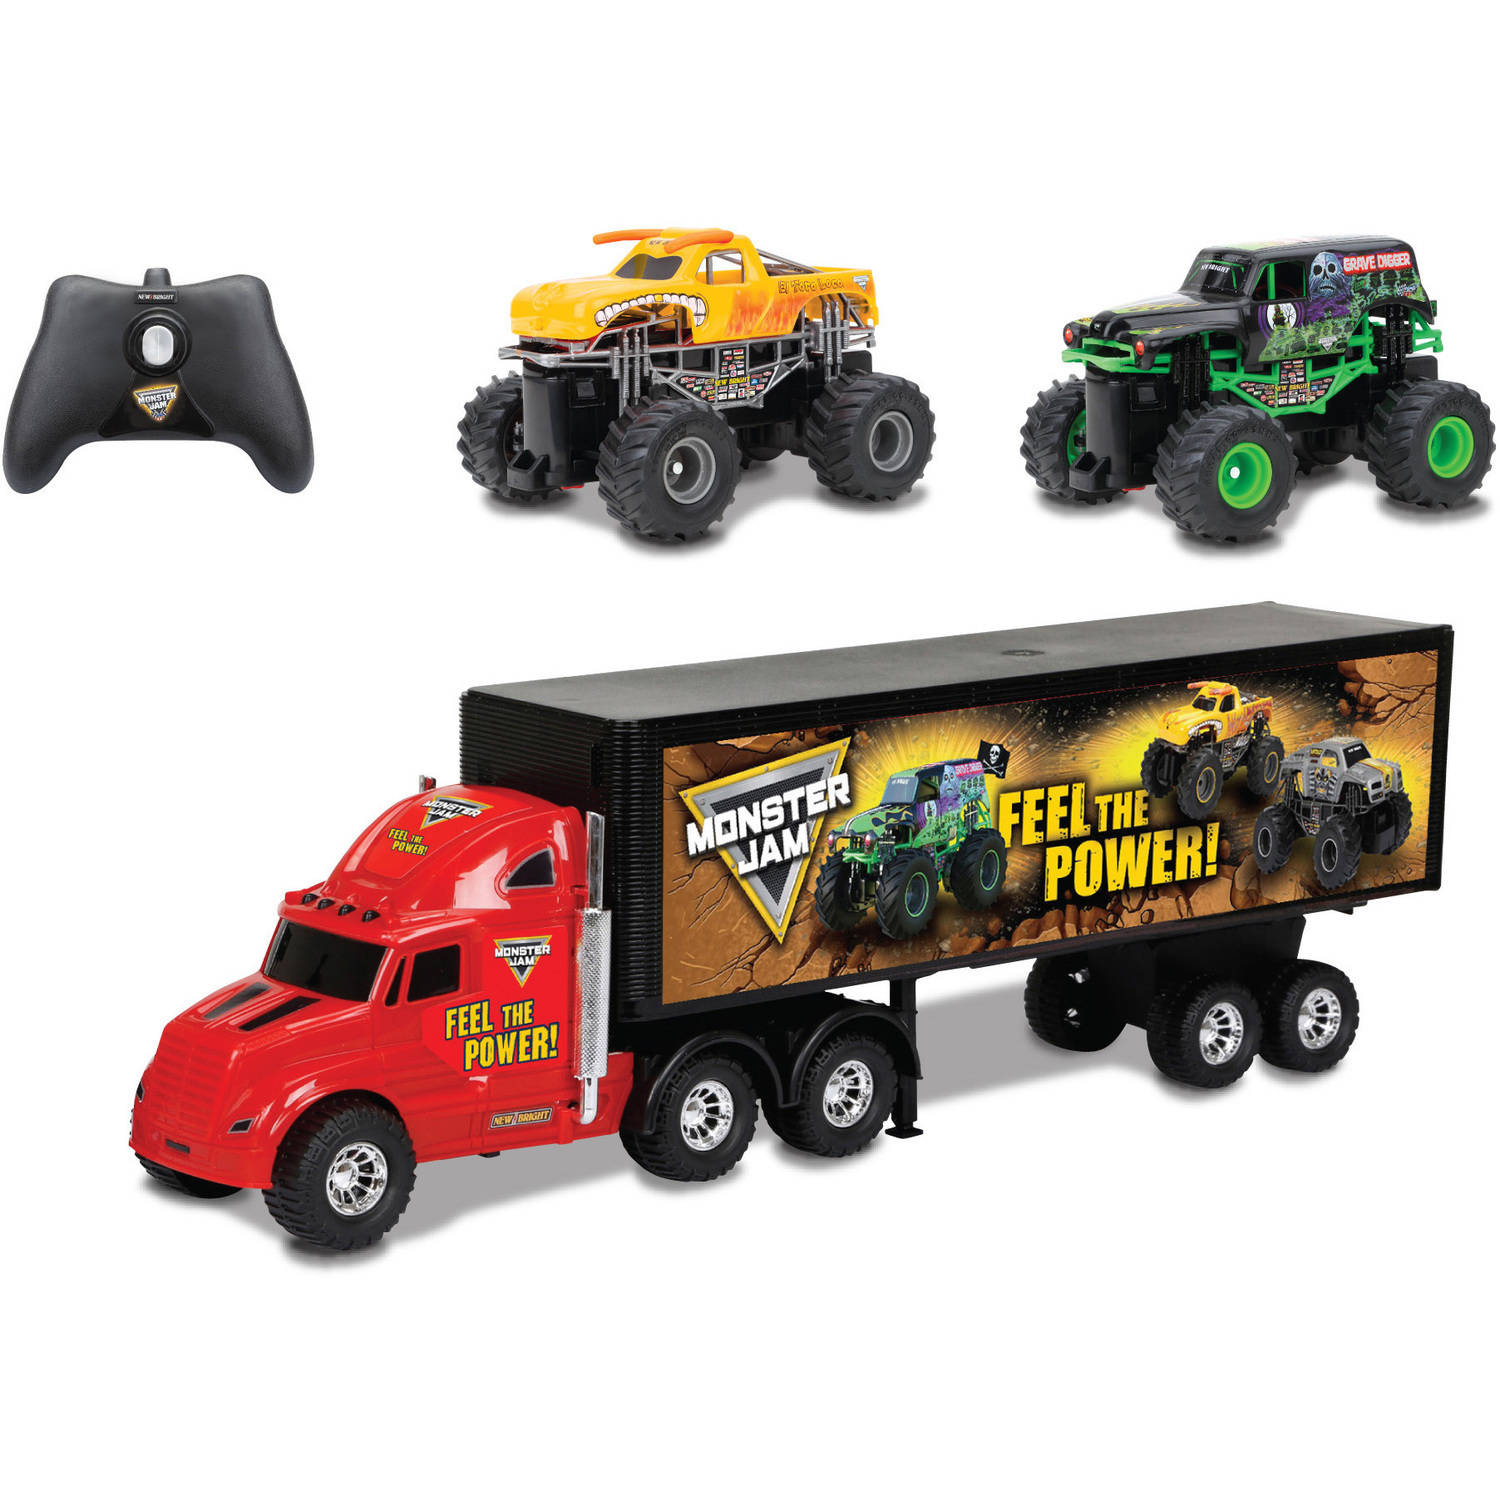 R/C Monster Jam Hauler Set with Grave Digger and Toro Loco